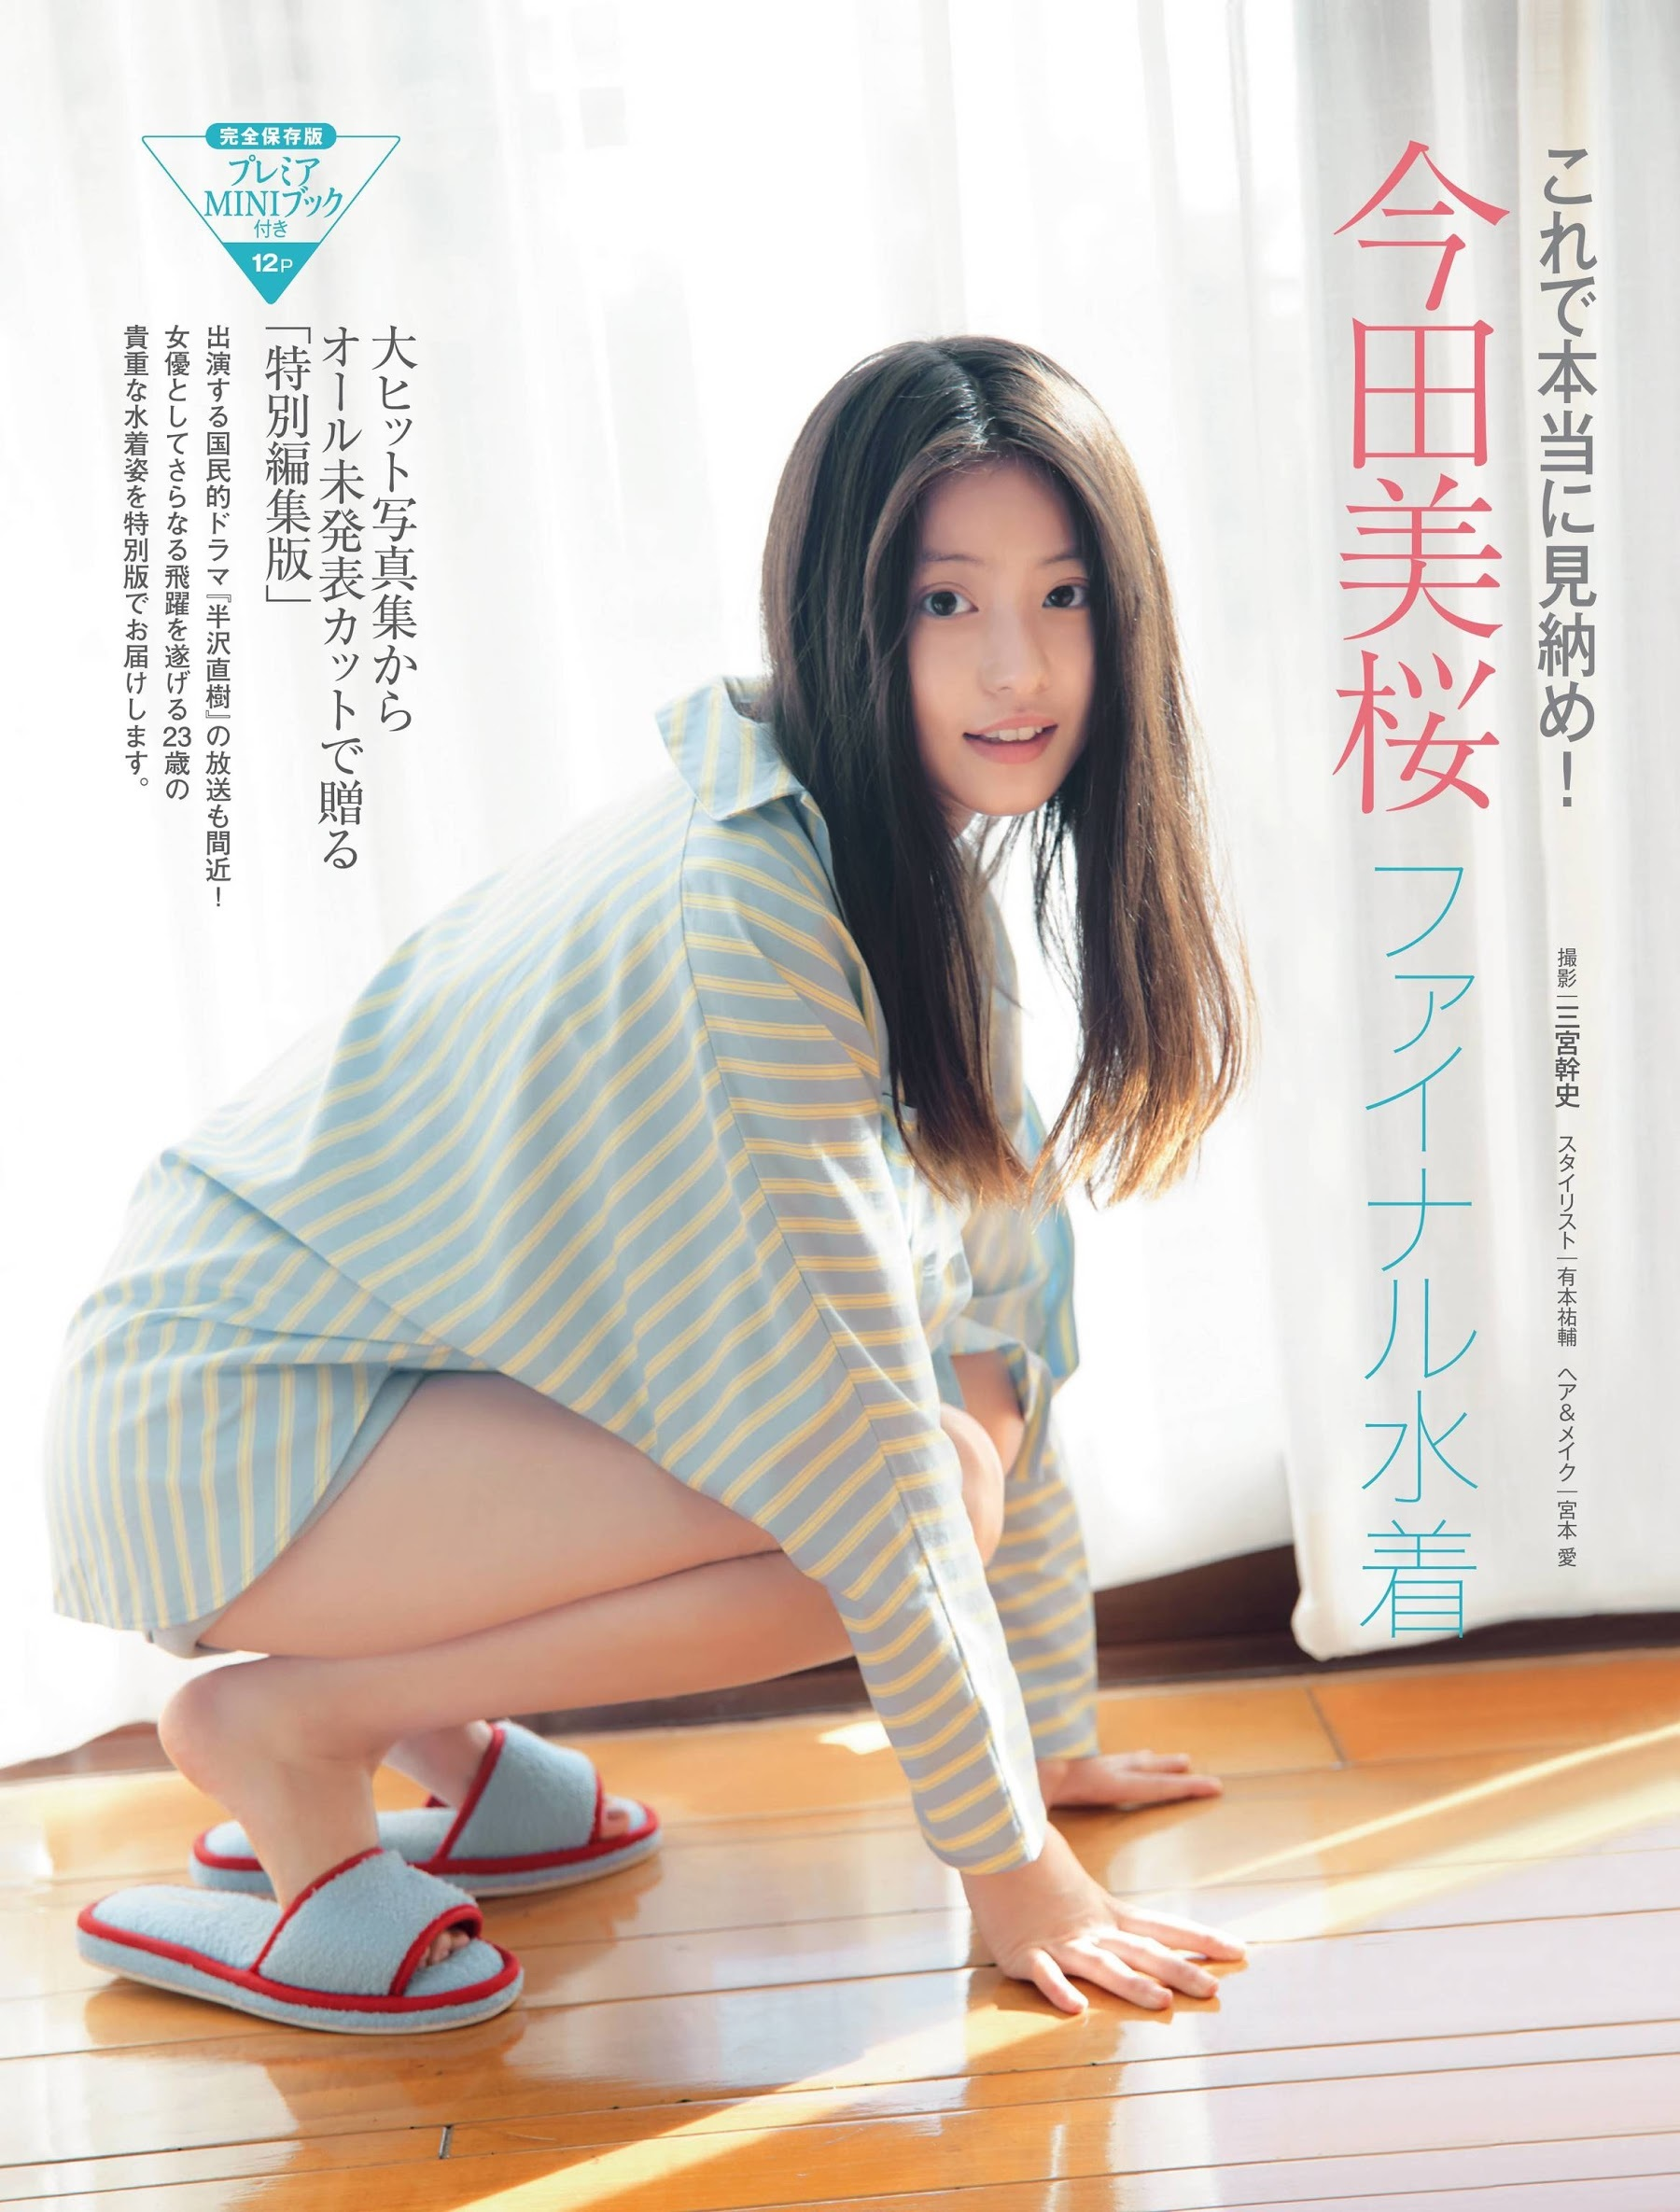 This is really the last time well be seeing her Final Swimsuit Mio Imada 2020001